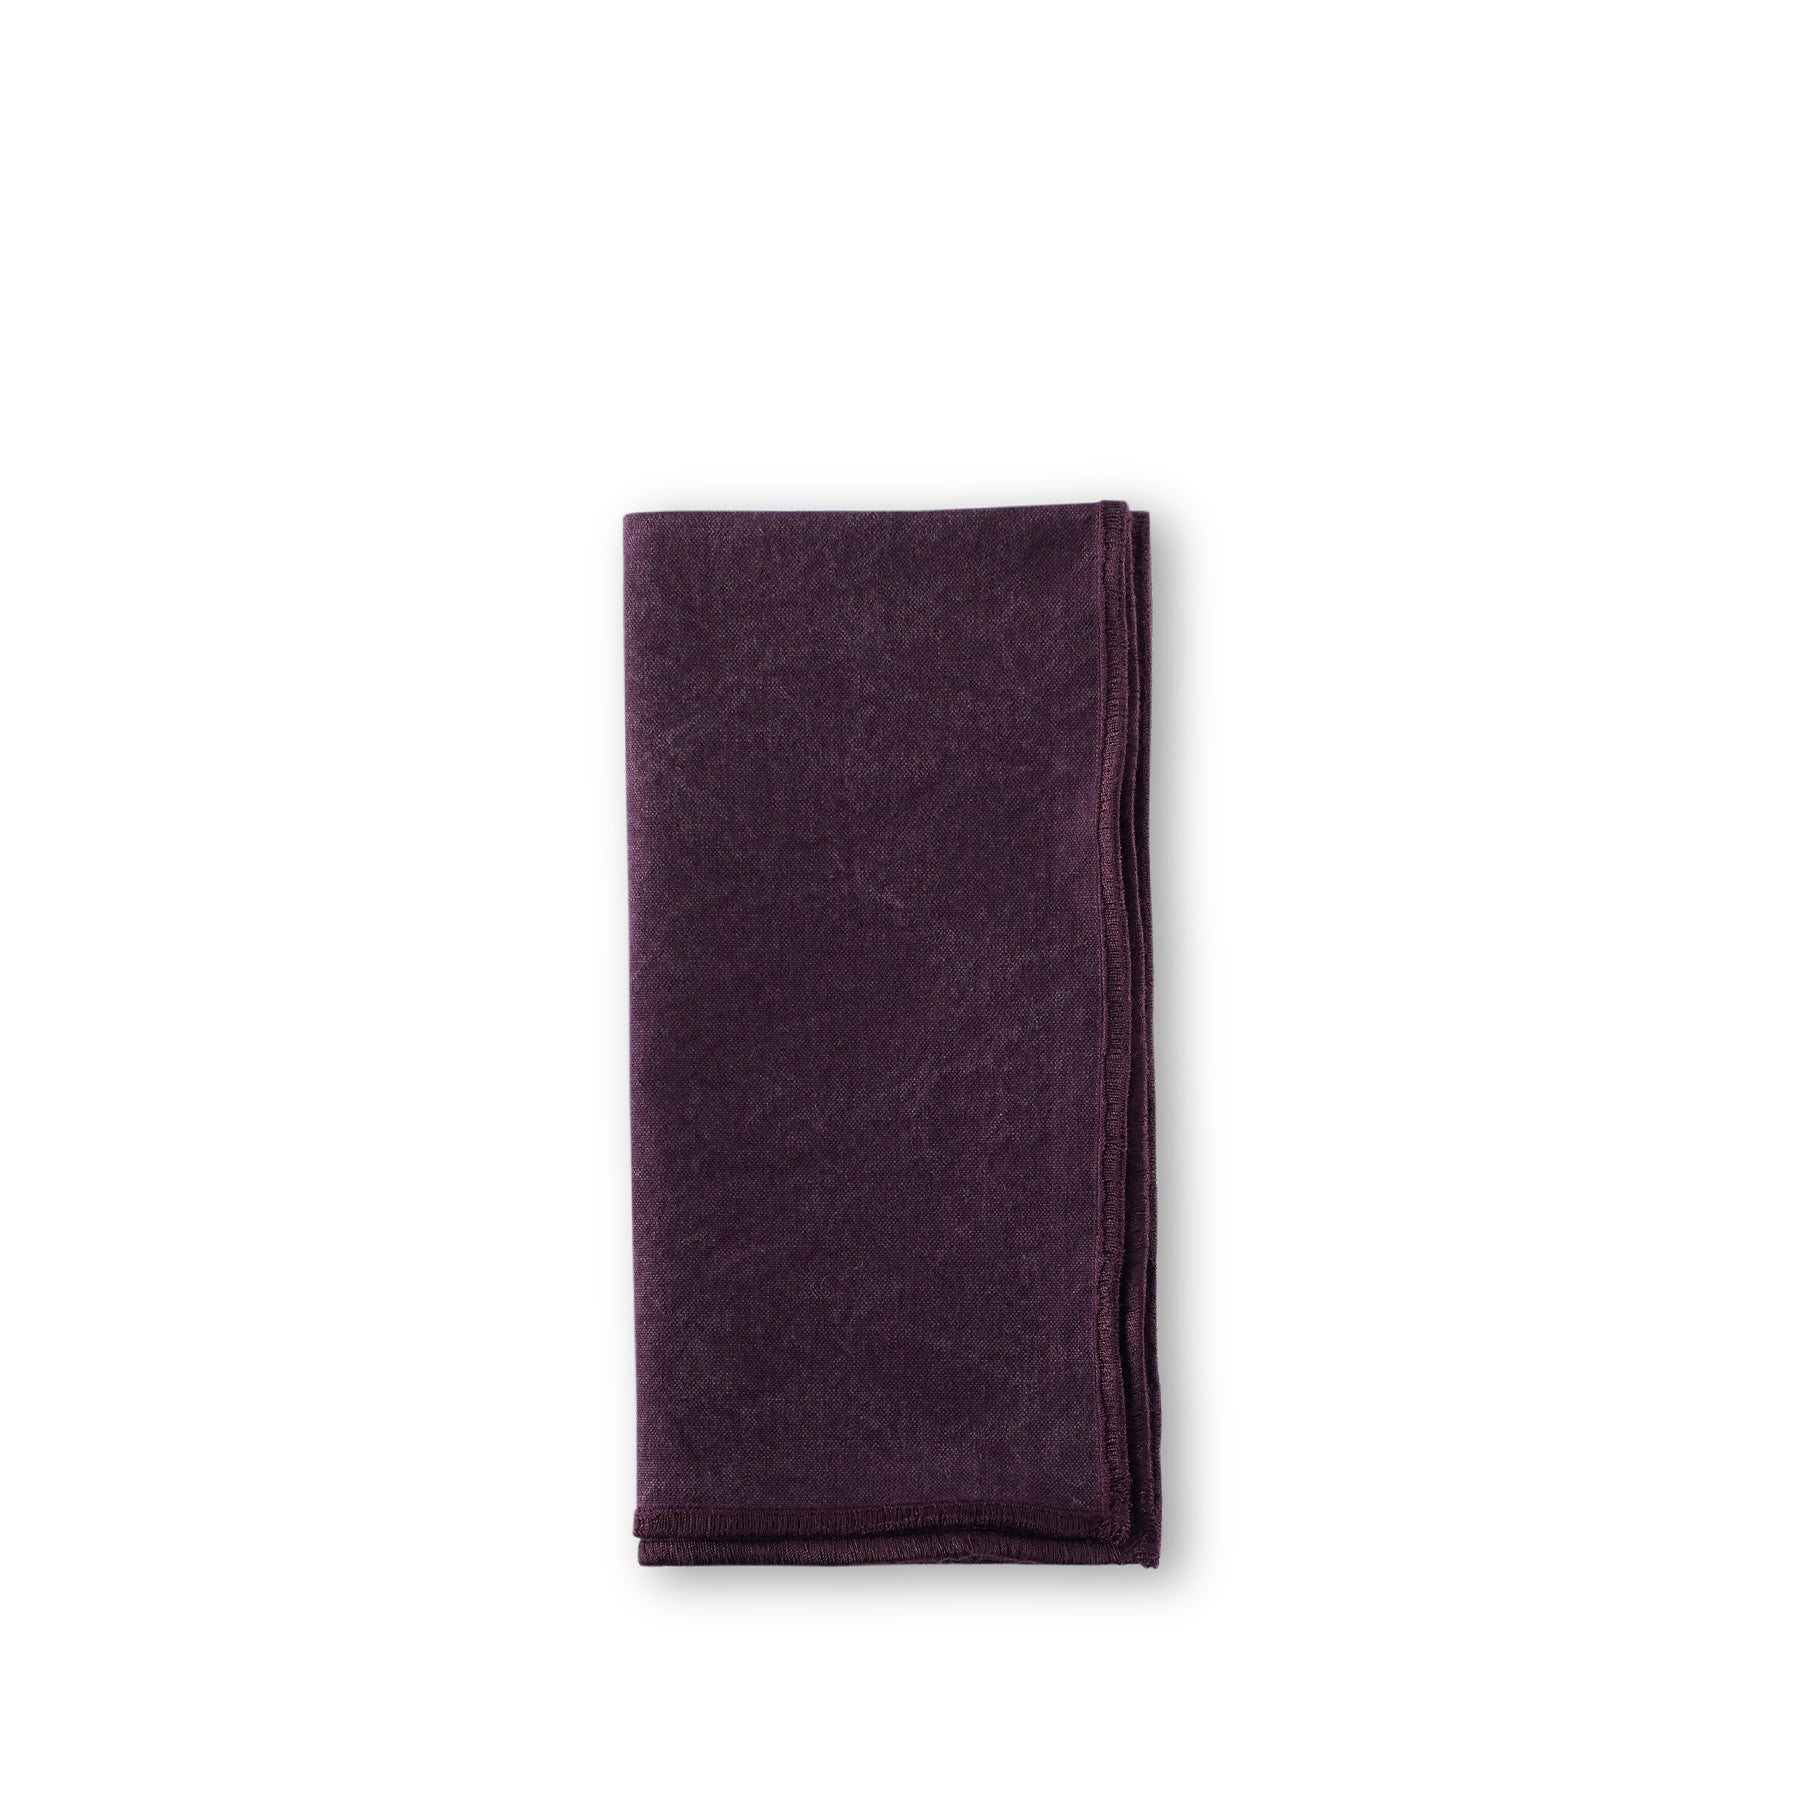 Sturdy Girl Napkin in Black Currant Zoom Image 1